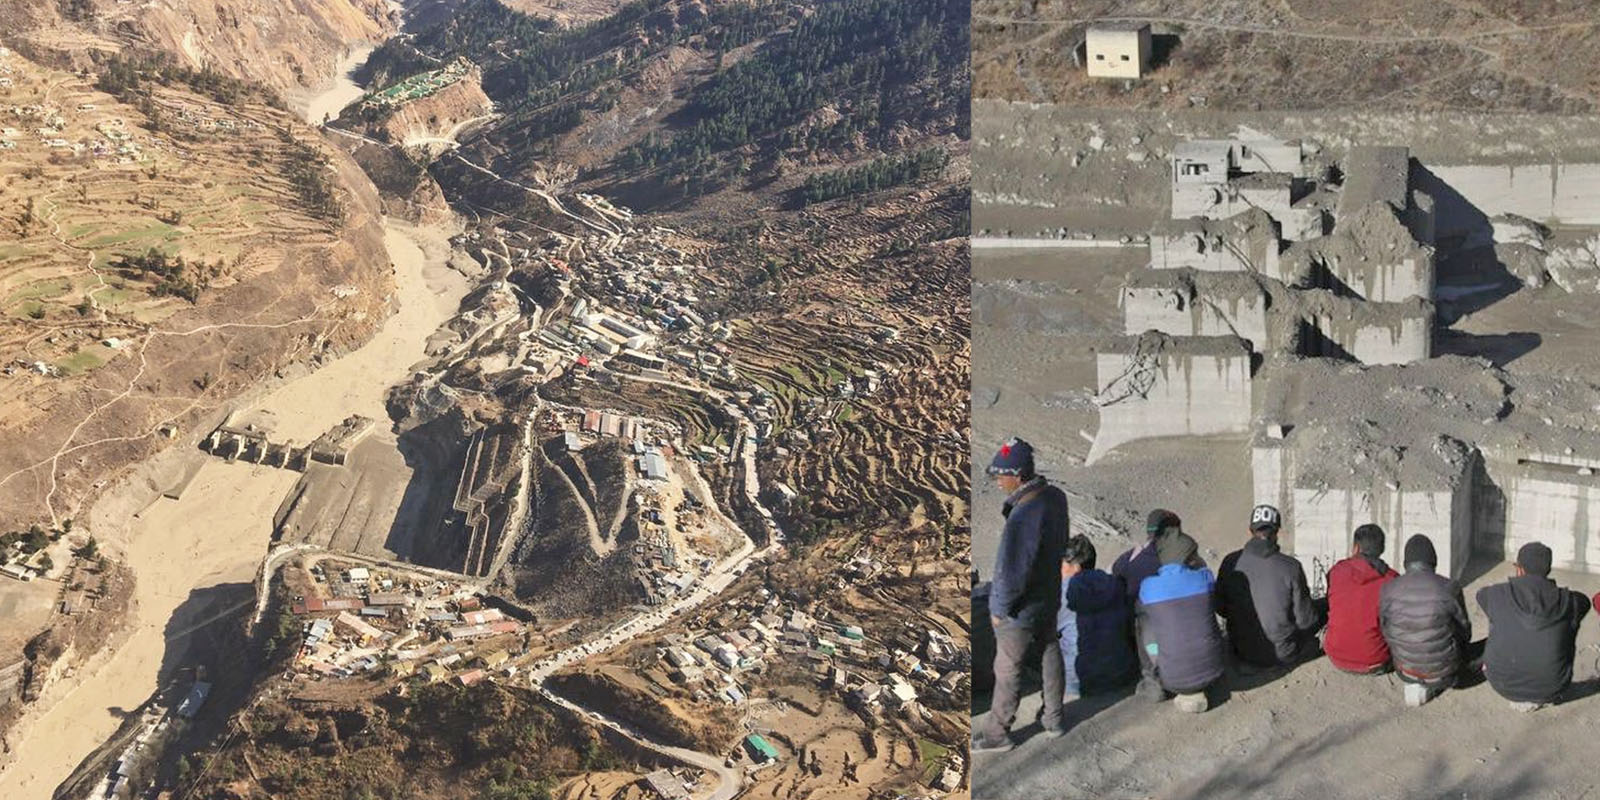 dangers of hydropower projects in himachal pradesh